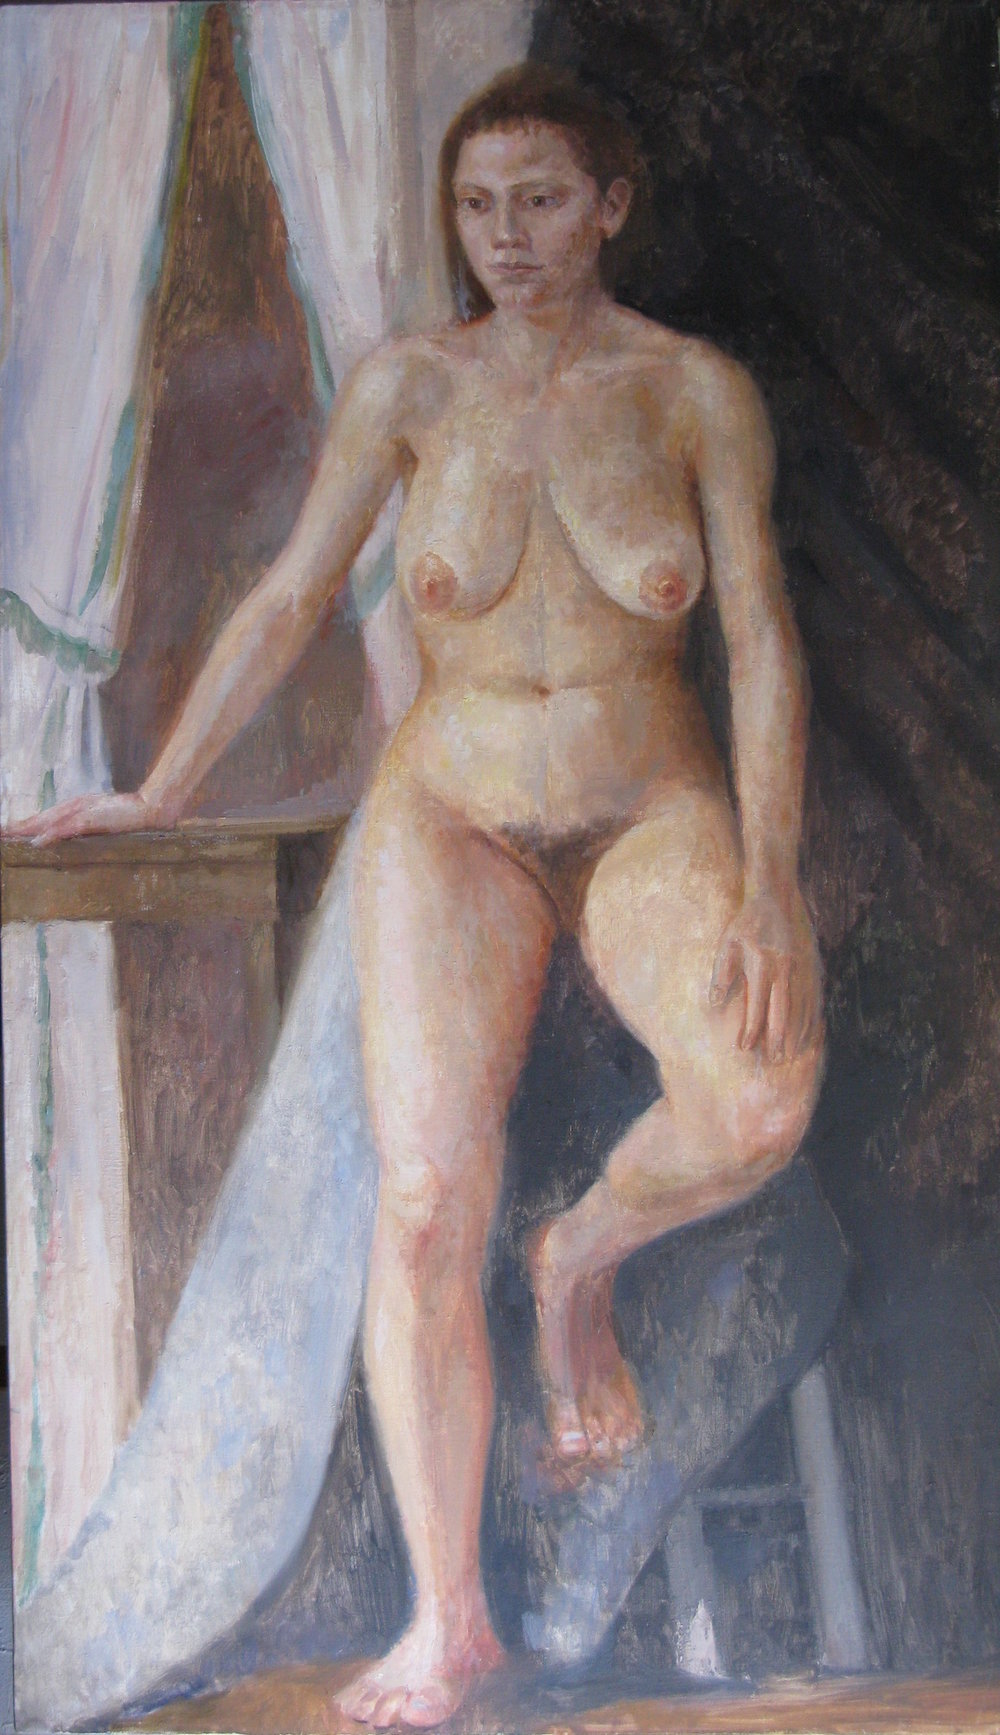 Female Nude, oil on linen, 58 x 34 inches